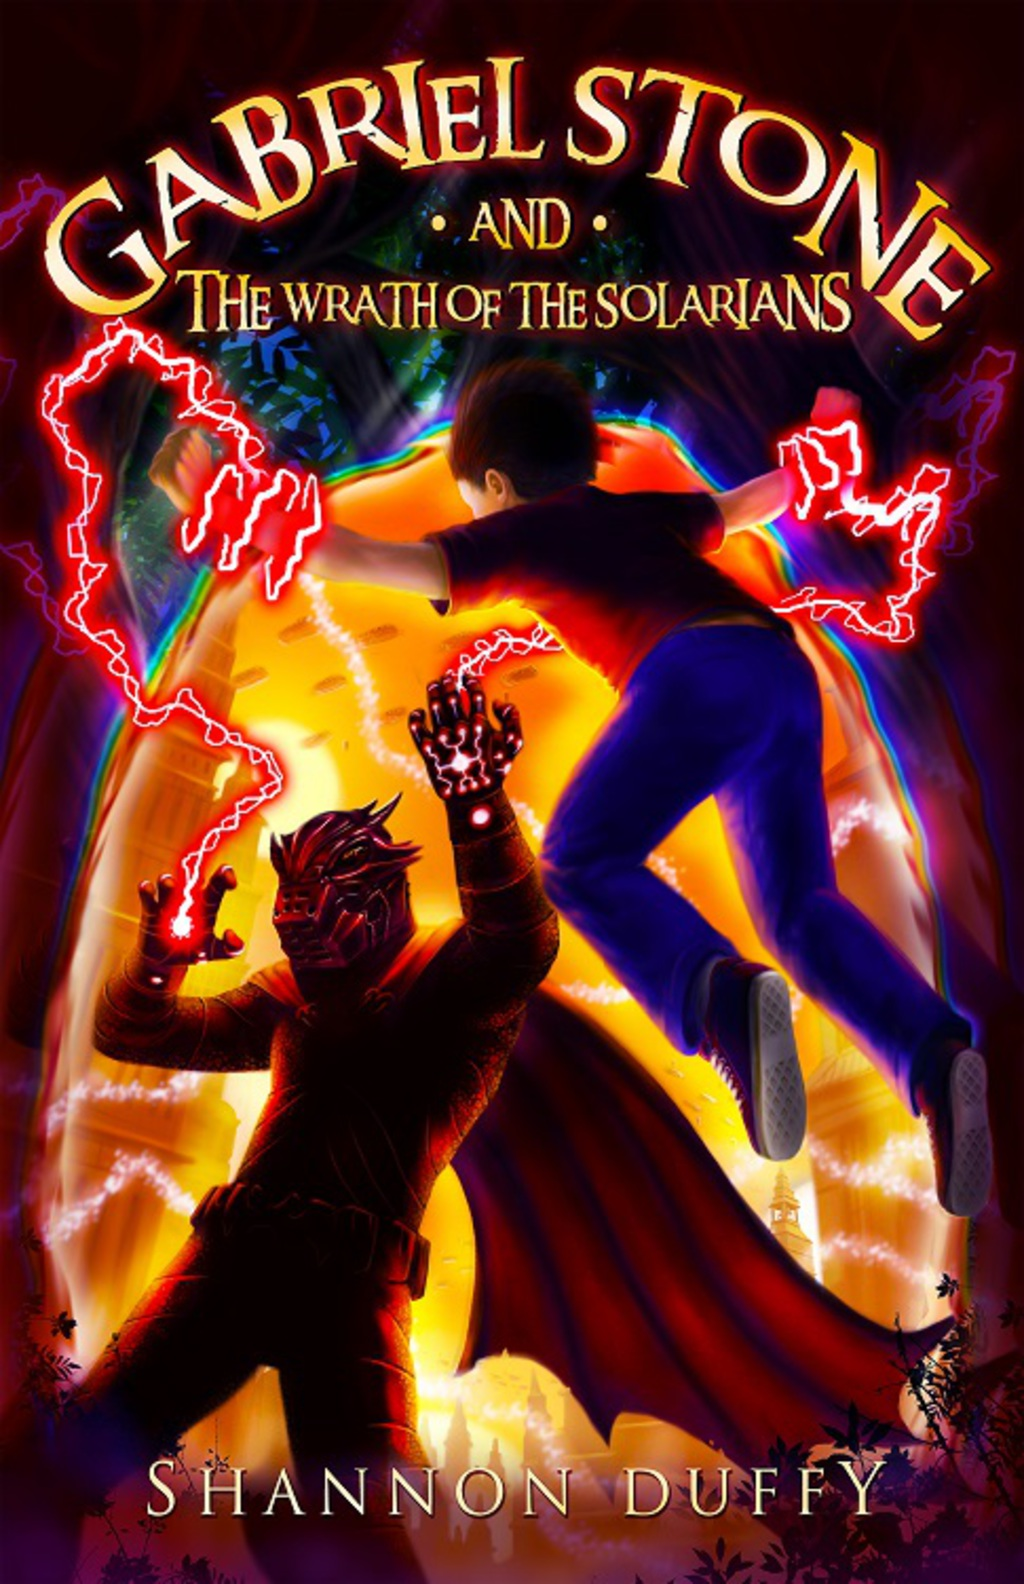 Gabriel Stone and the Wrath of the Solarians (ebook) eBooks